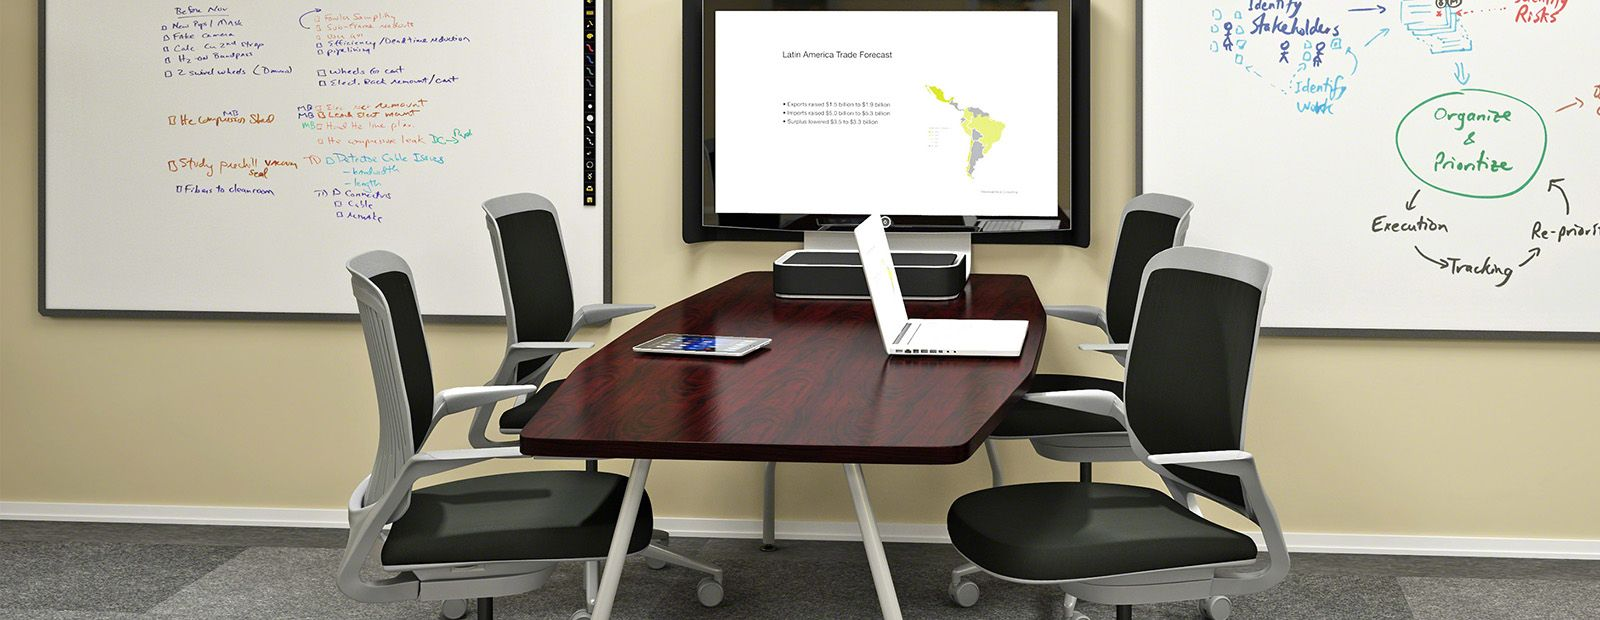 Learning and Training Spaces Workspace gallery image